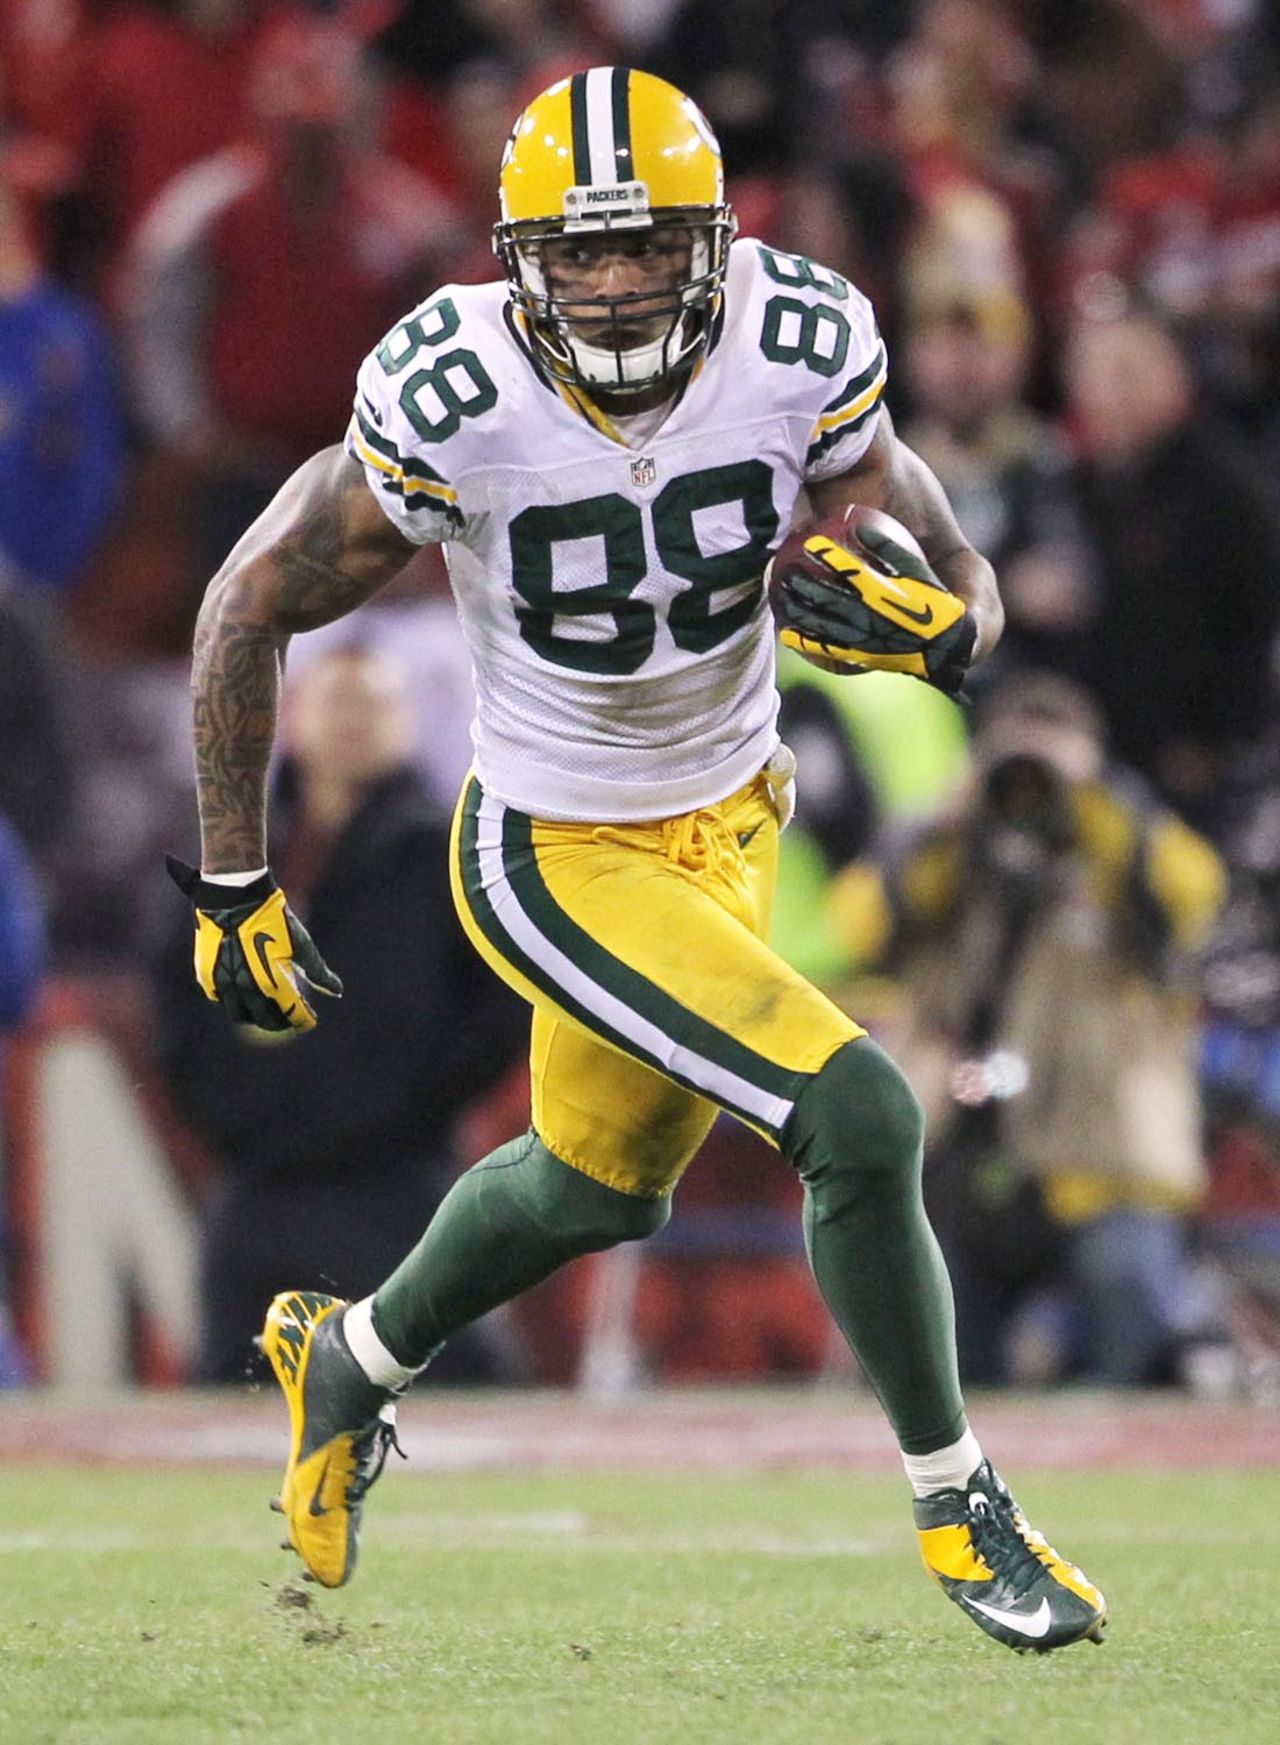 jermichael-finley-te-green-bay-packers_p